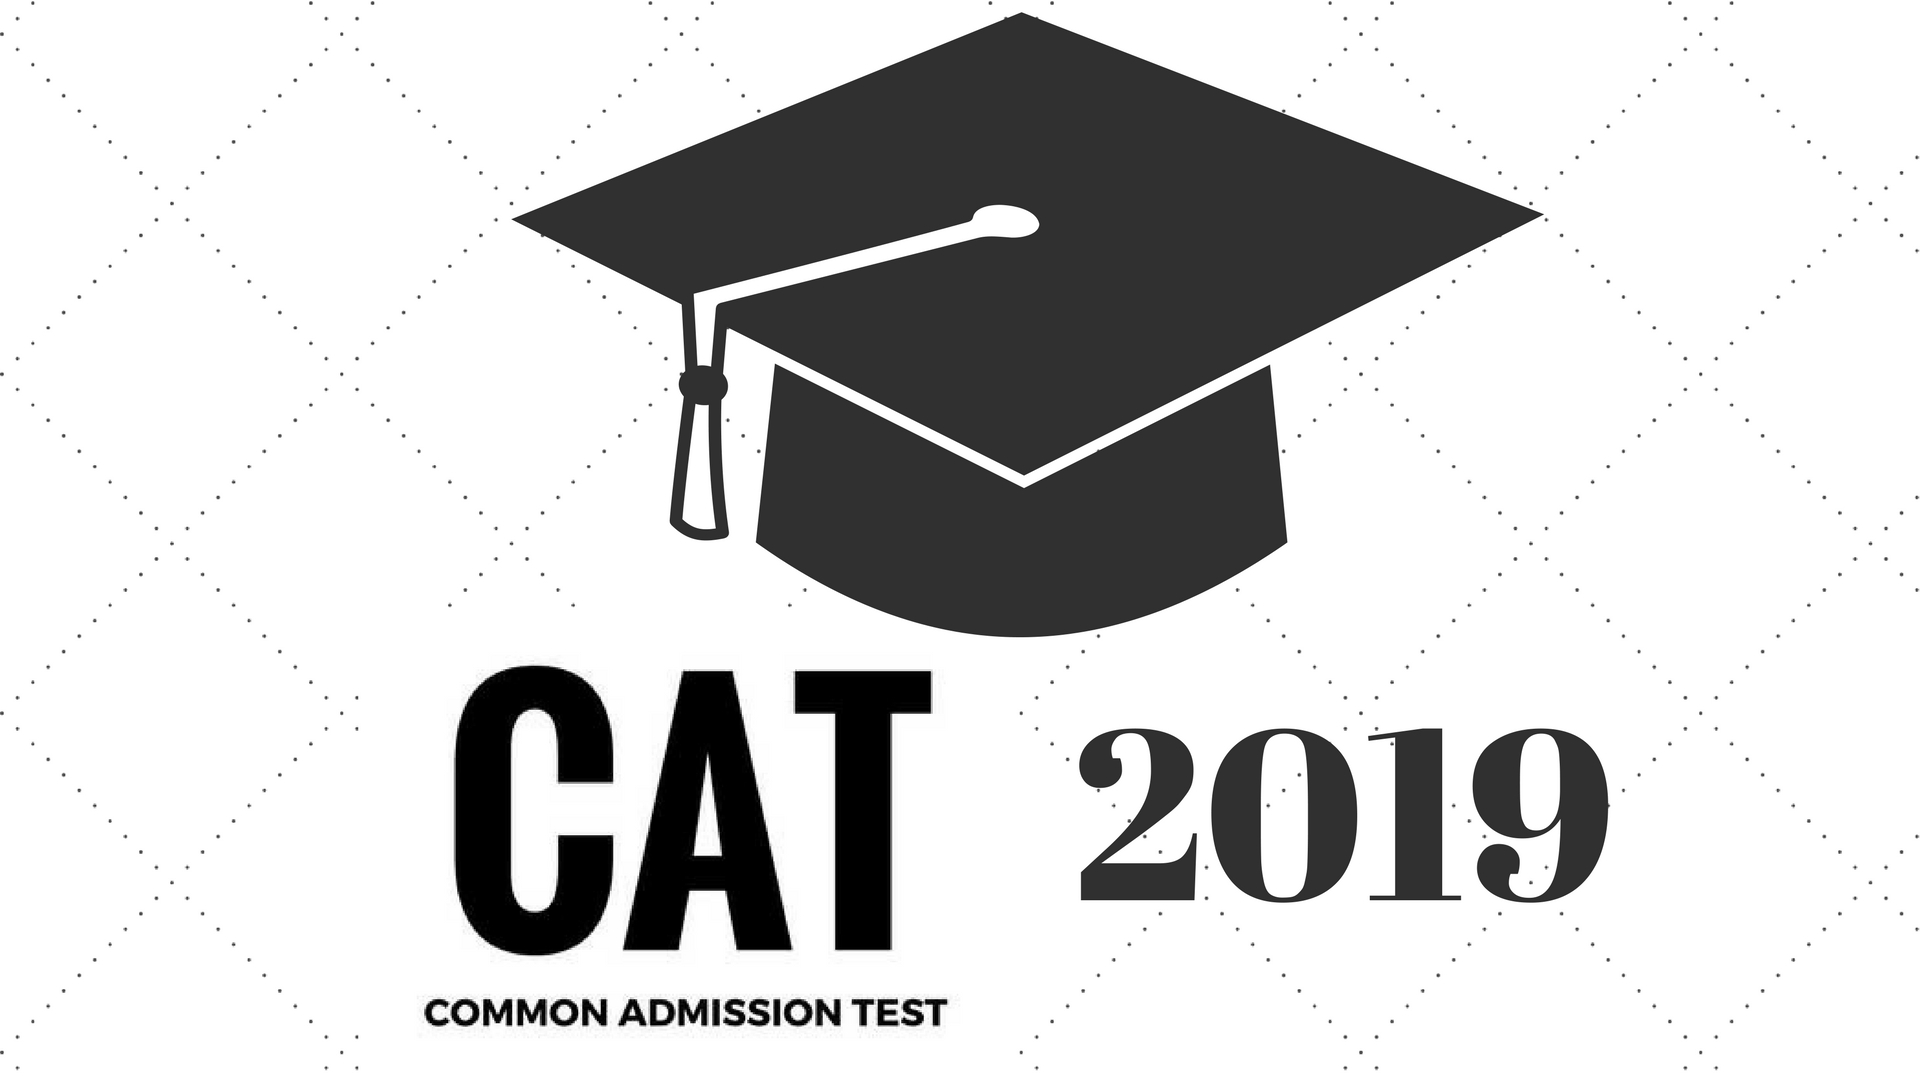 CAT 2019 Exam | Eligibility, Registration Fees, Exam Pattern, Syllabus